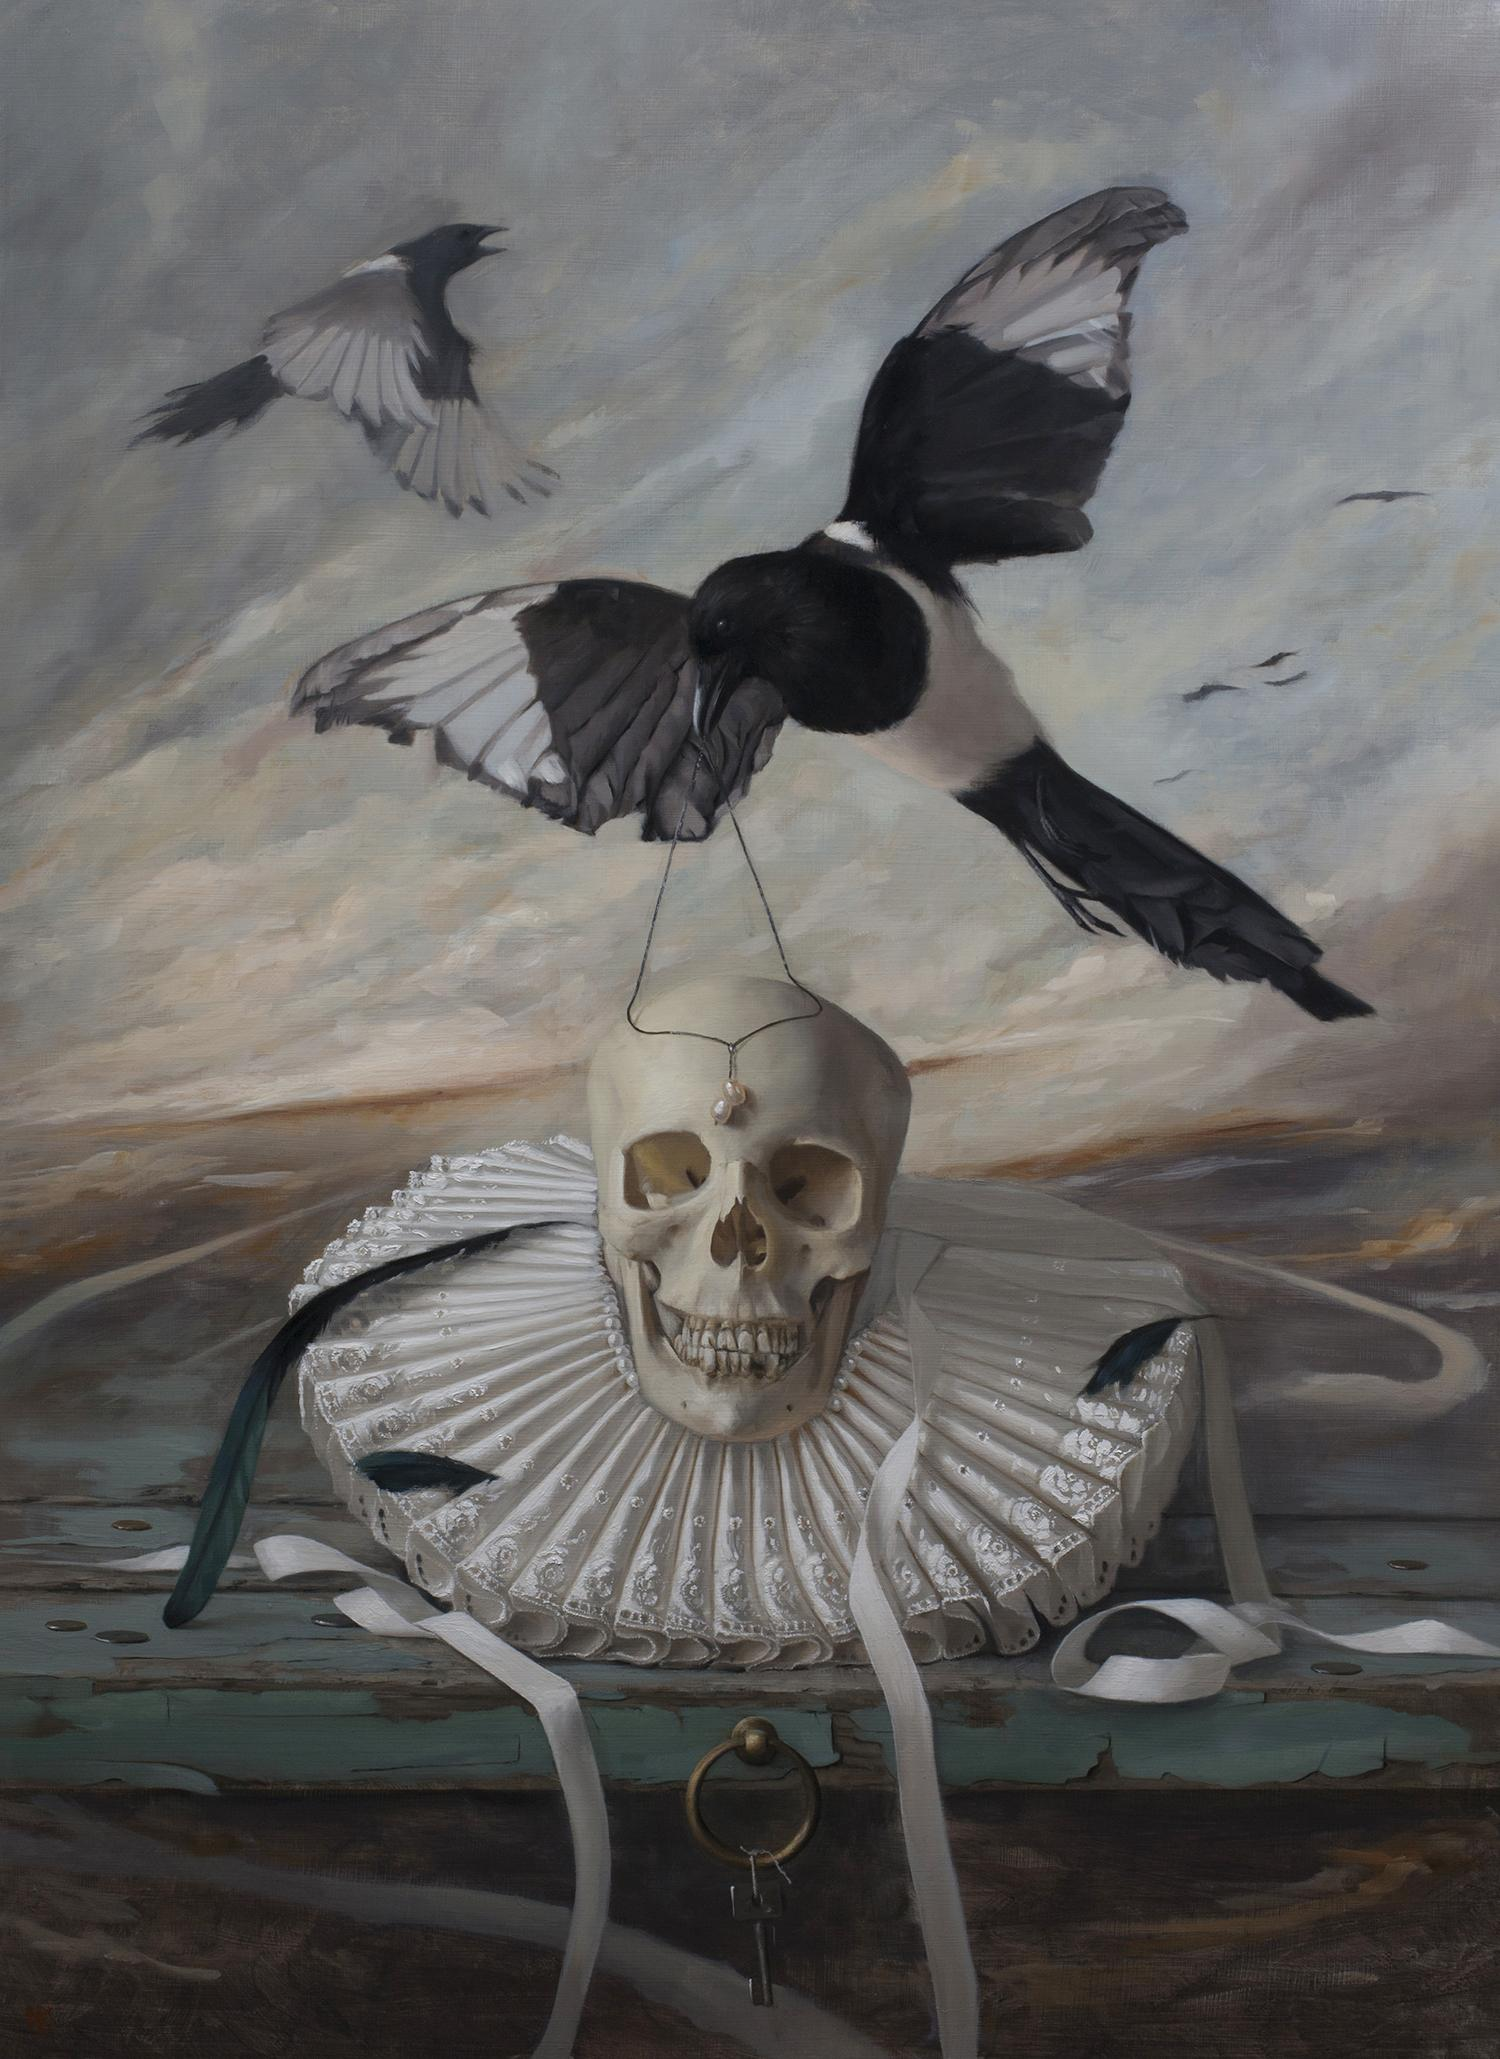 adornment, oil painting by david gluck, fine art, still life, bird and human skull